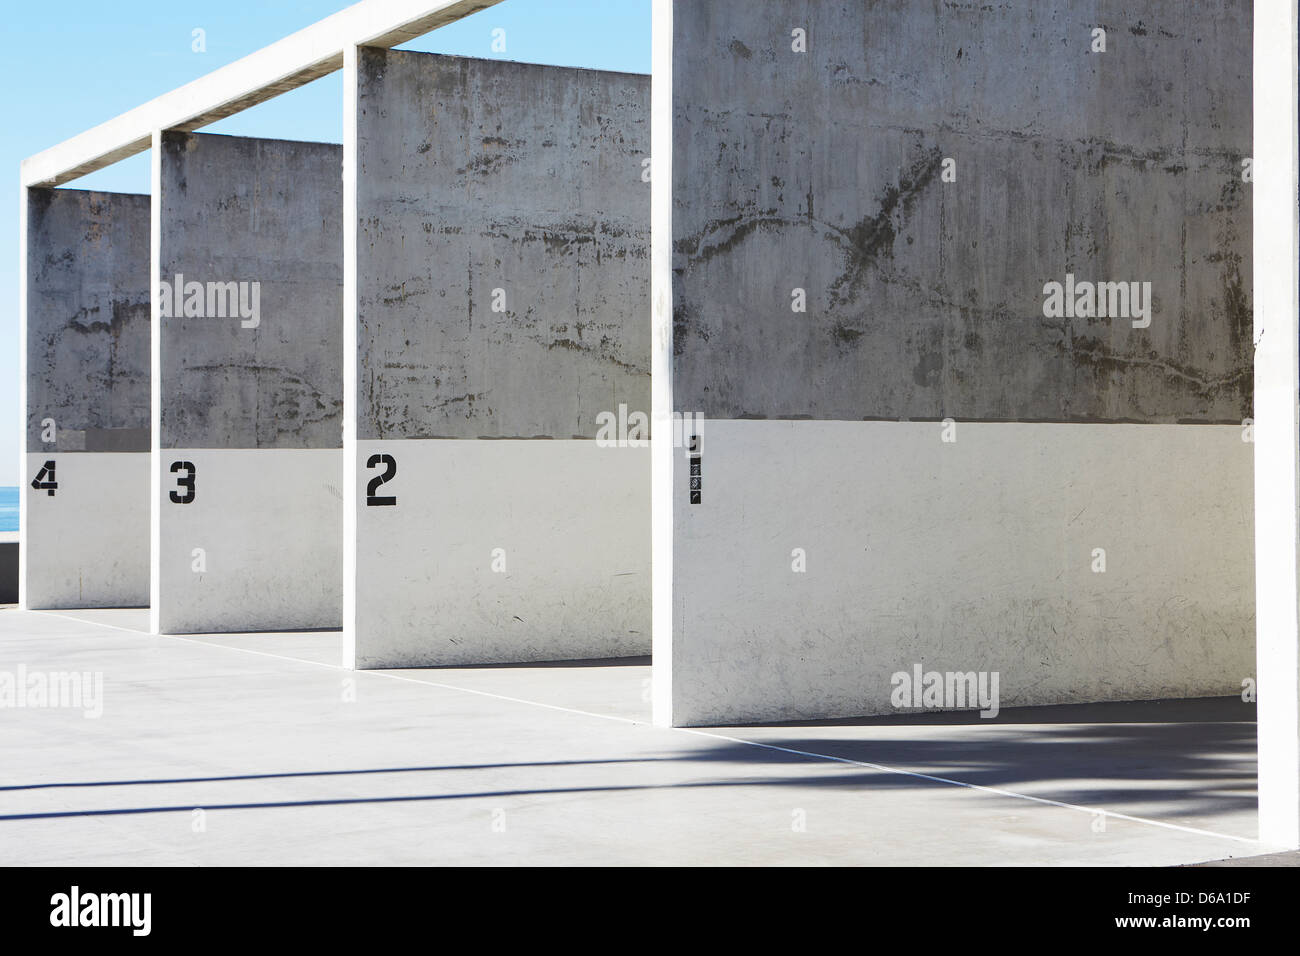 Labeled concrete walls - Stock Image